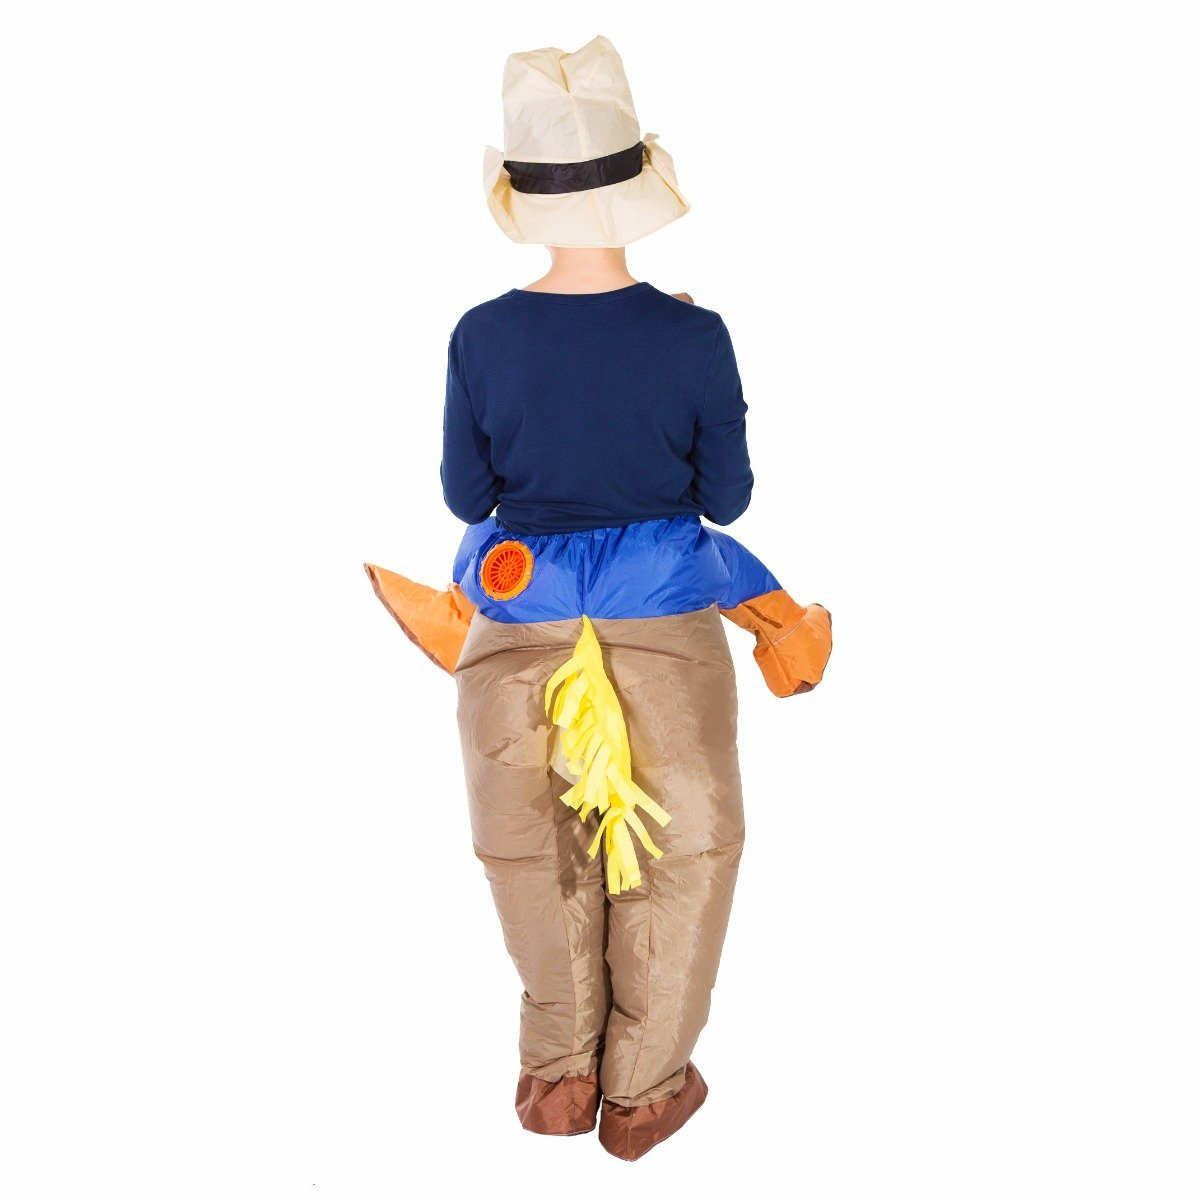 Bodysocks - Kids Inflatable Cowboy Costume